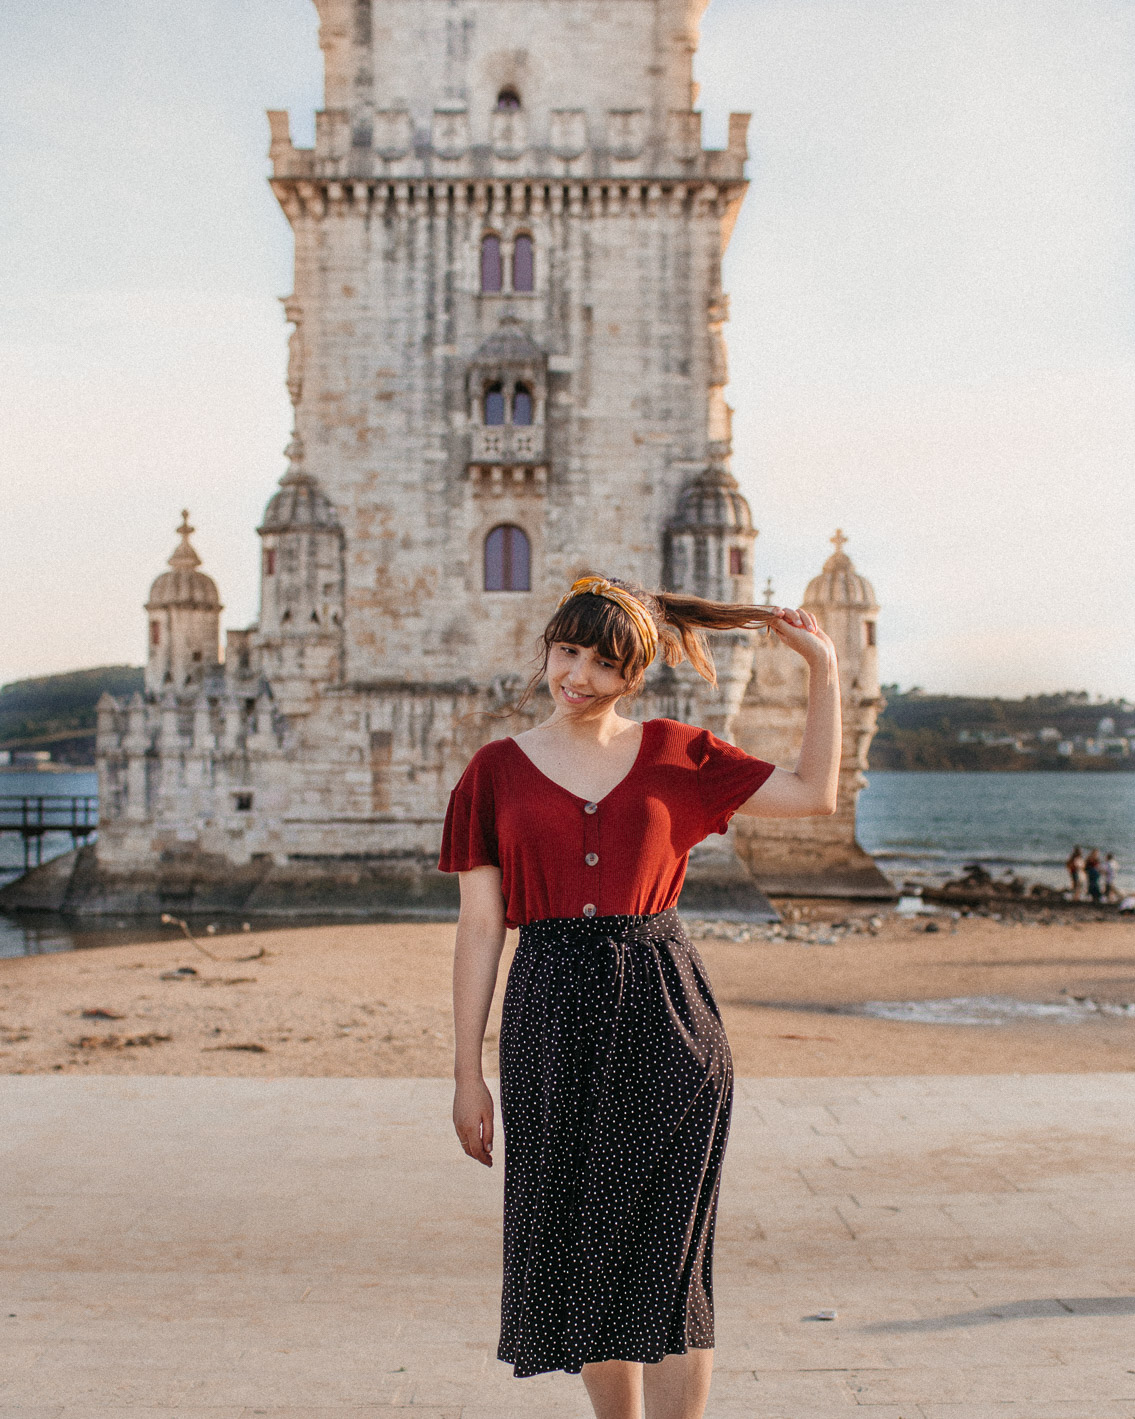 Torre de Belém - The cat, you and us